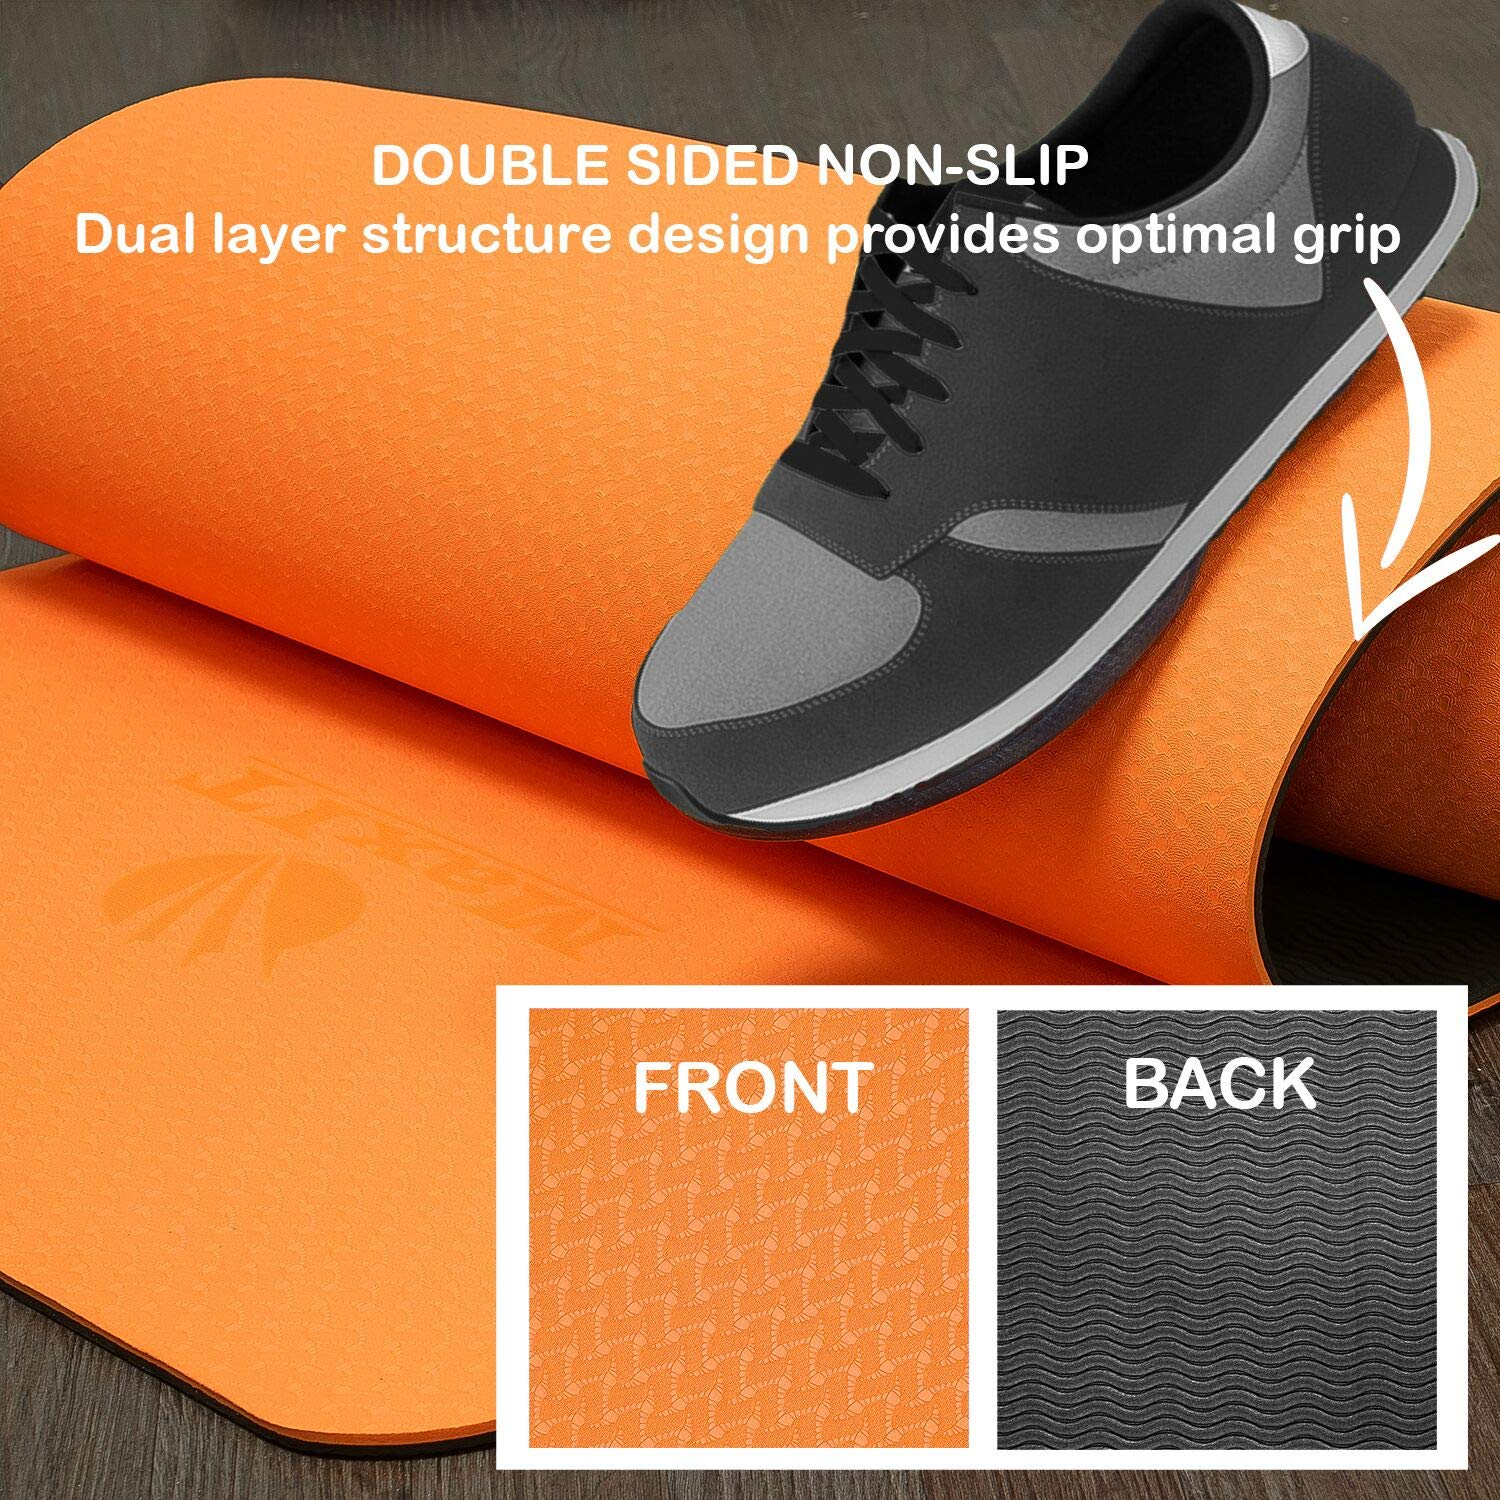 Eco-Friendly Non-Slip High-Density Pro Workout Mat with Carrying Strap Pilates Pro Workout Mat High-Density MAXIT Yoga Mat 6mm Exercise TPE 6mm Carrying Strap Included 1//4 1//4 Fitness